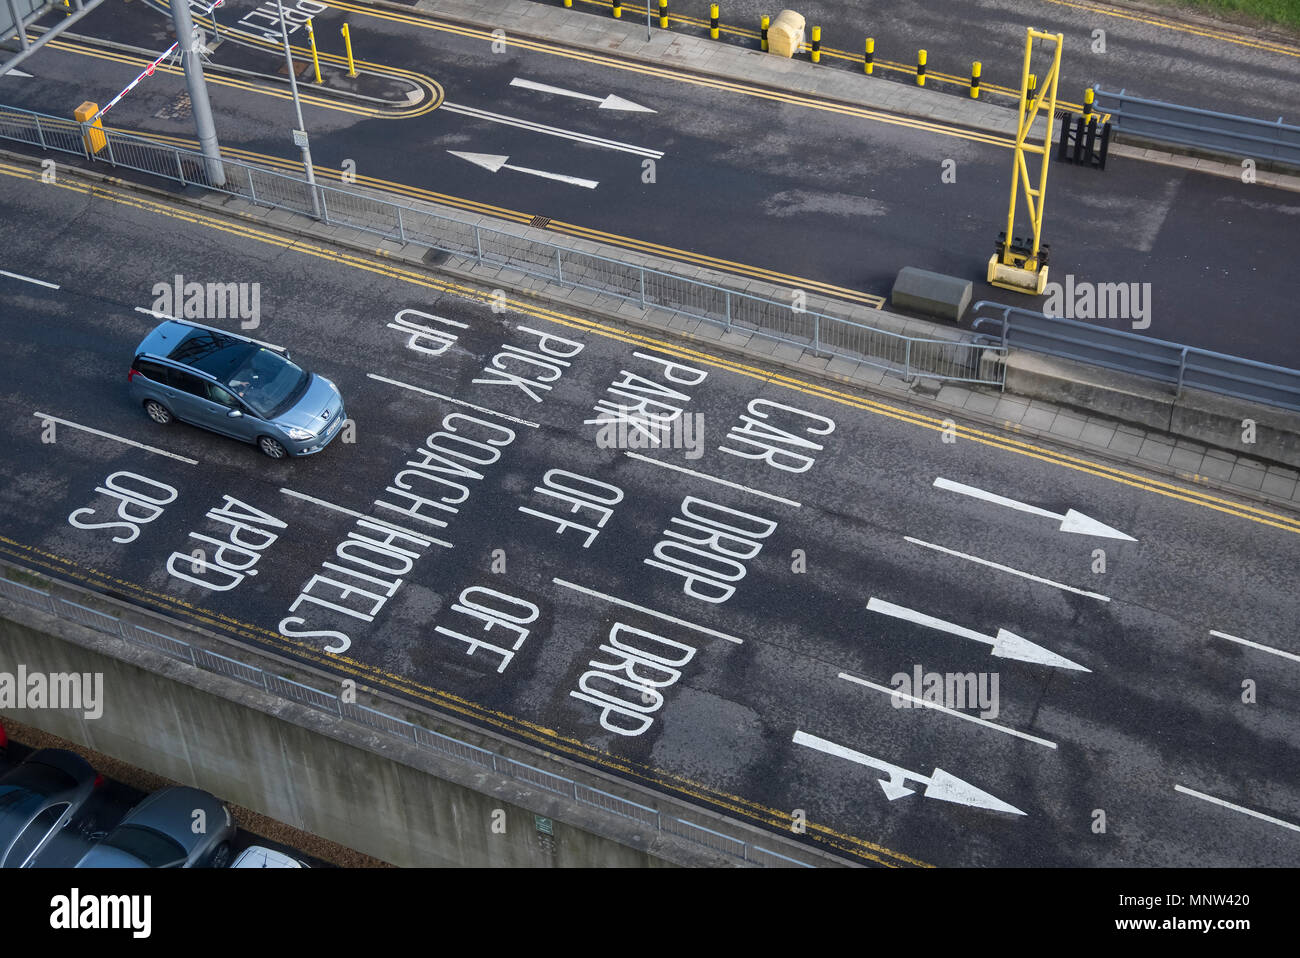 Driving Confusion, Airport Car Parking, London Gatwick Airport, England, UK - Stock Image